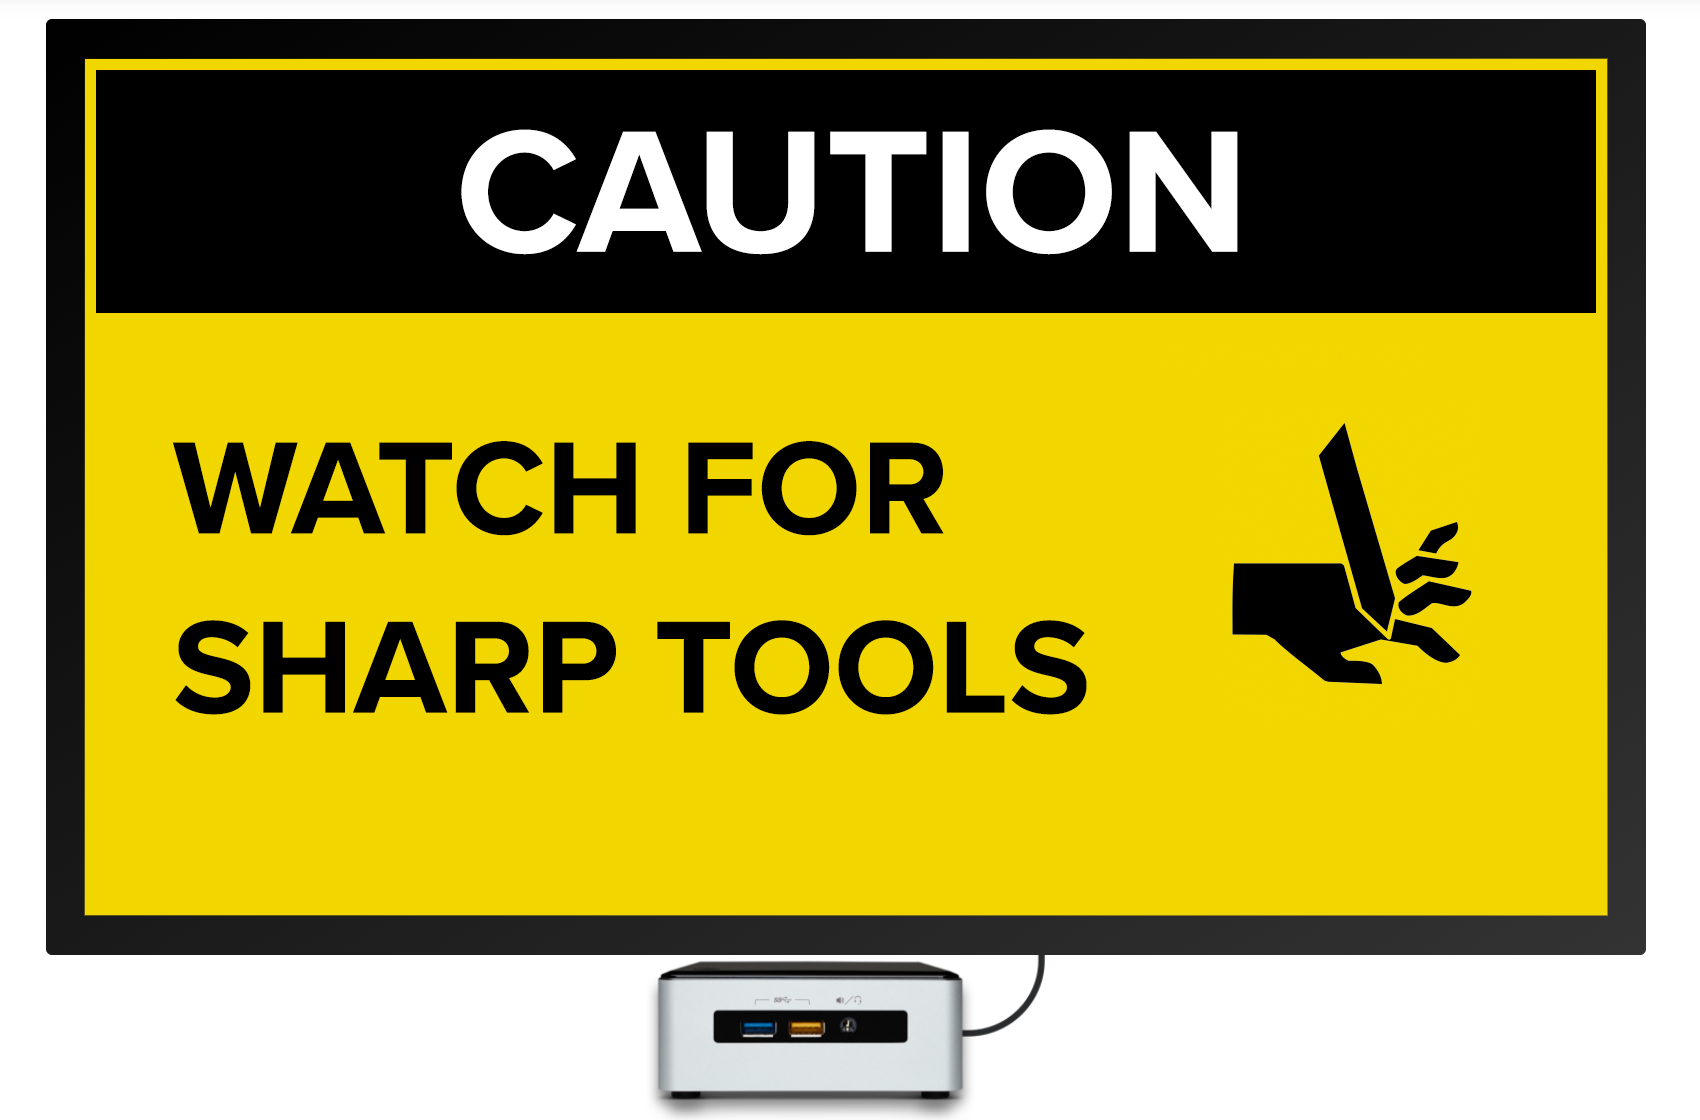 sharp tool digital signage